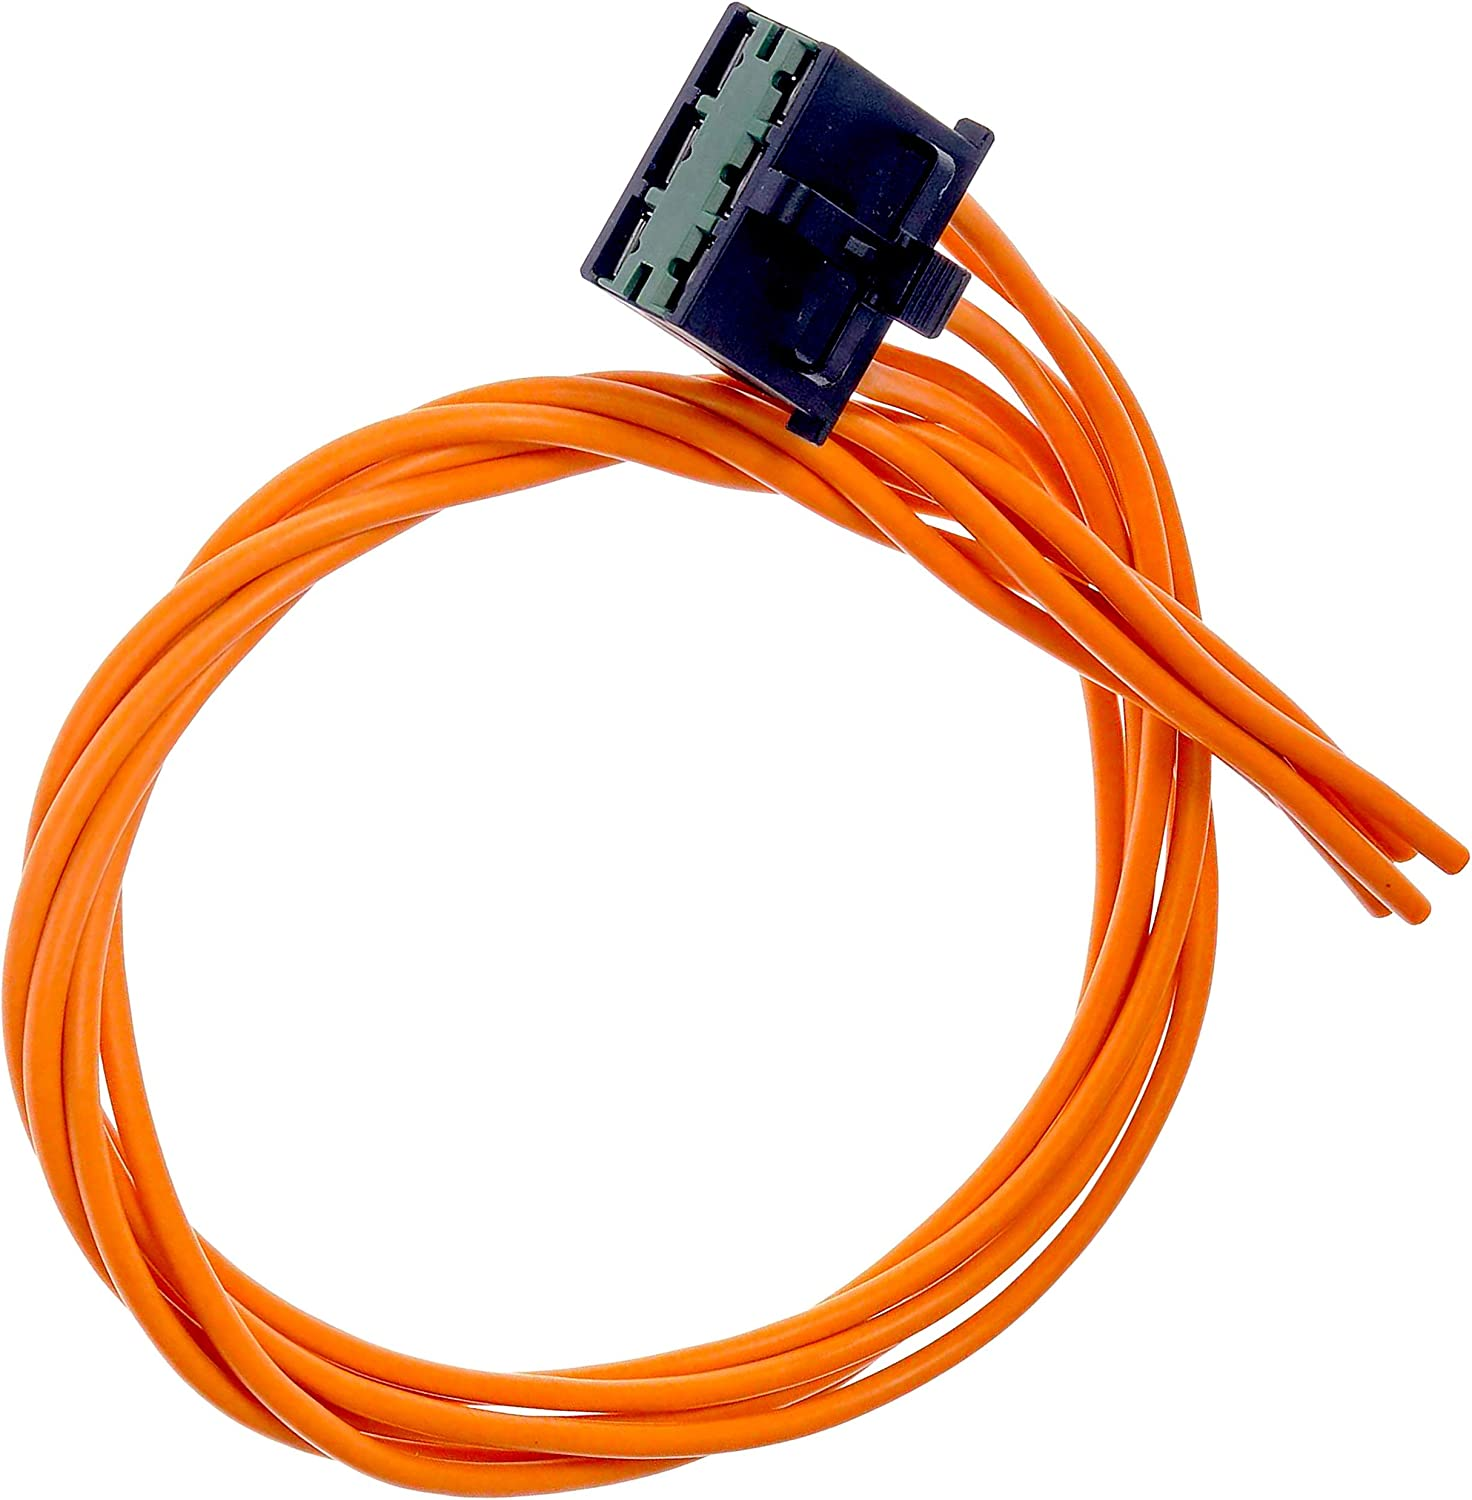 Amazon.com: APDTY 116683 Blower Motor Resistor Wiring Harness Plug  Connector Fits Chrysler Cirrus, Sebring, Town & Country, Voyager/Dodge  Caravan, Stratus Plymouth Breeze (Replaces 5183467AA): AutomotiveAmazon.com